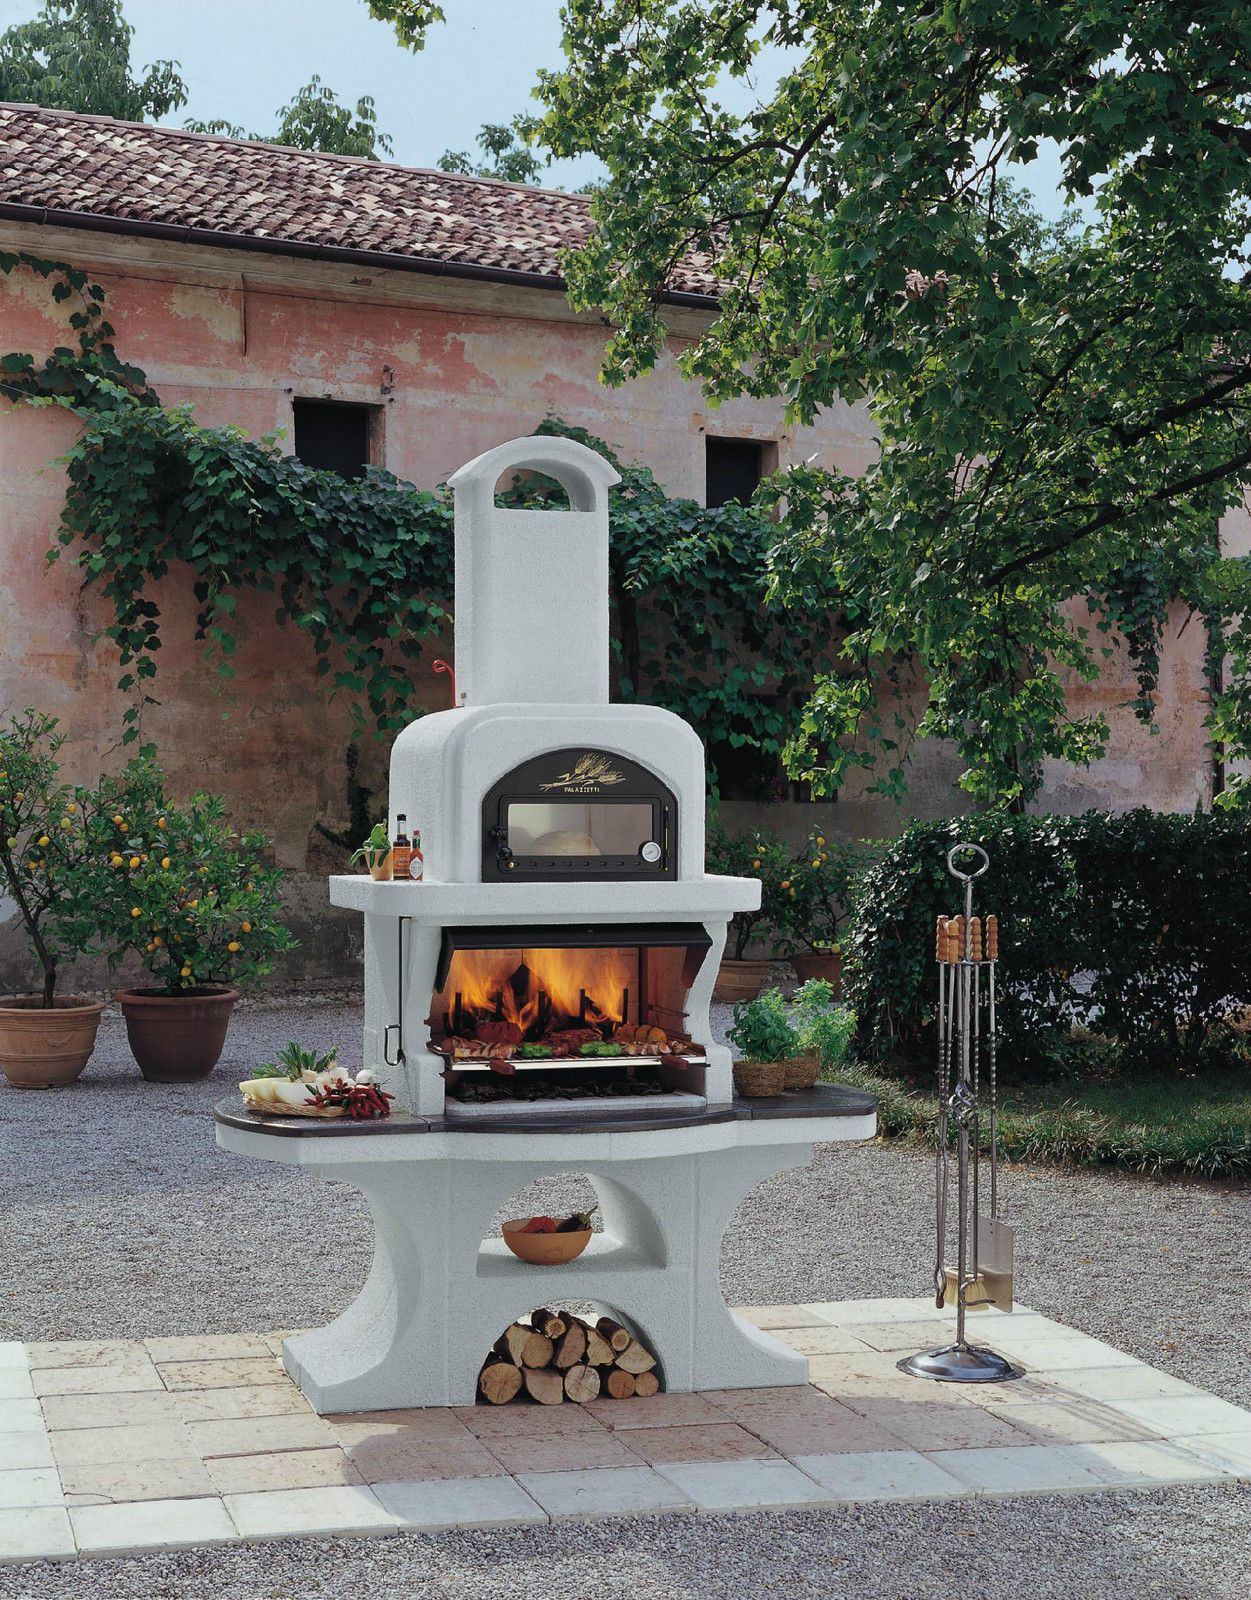 Palazzetti Outdoor Bbq Pizza Oven Capri Stainless Steel Ebay